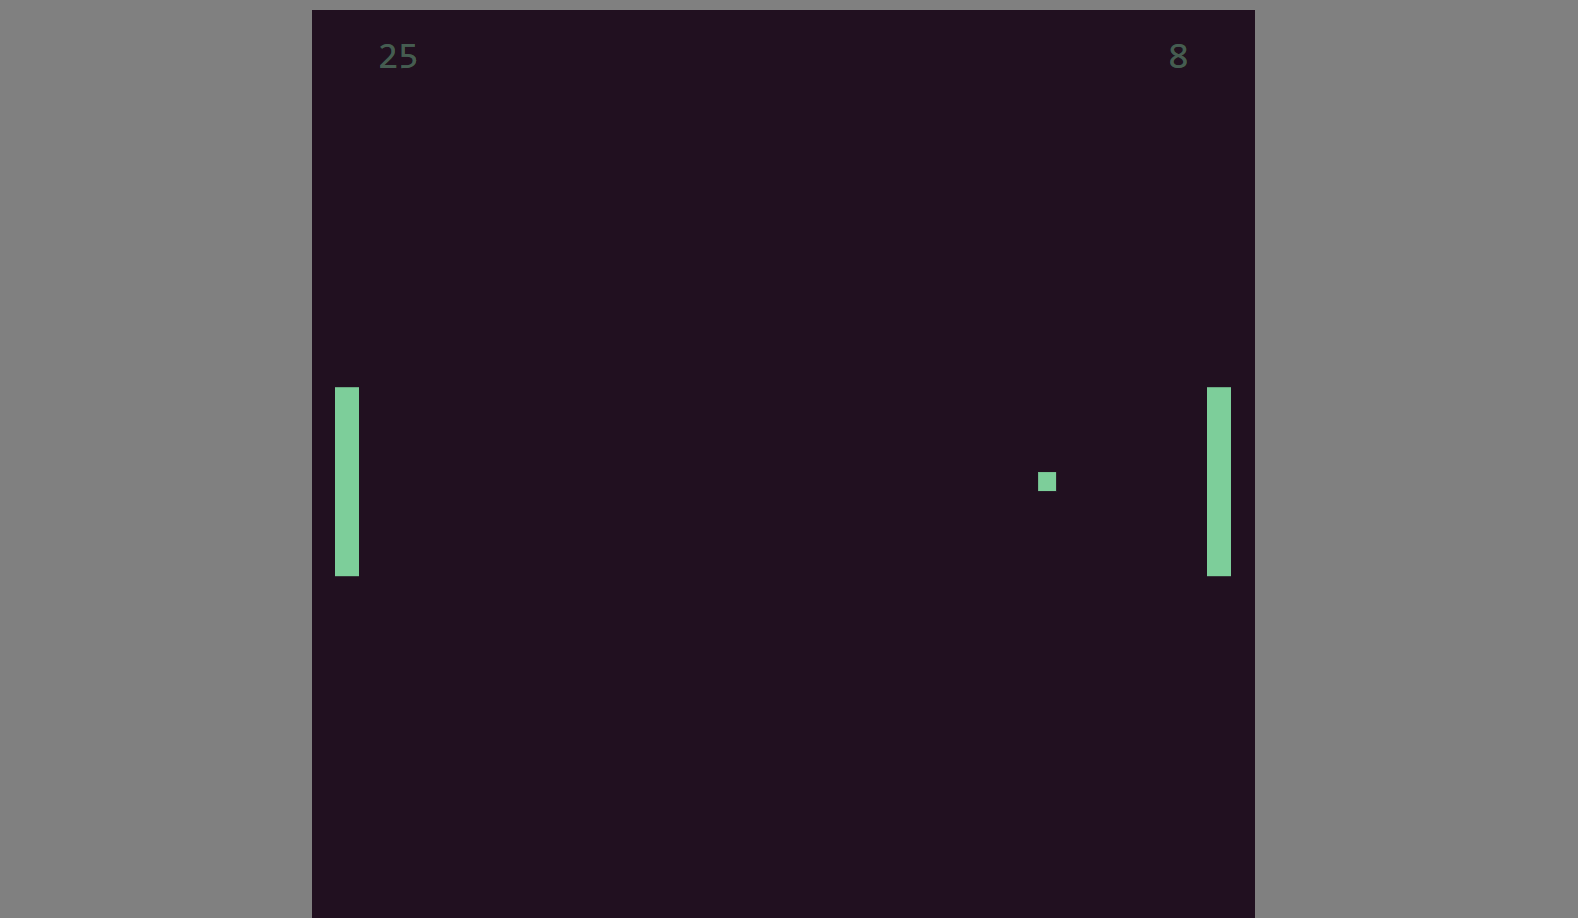 image of pong game